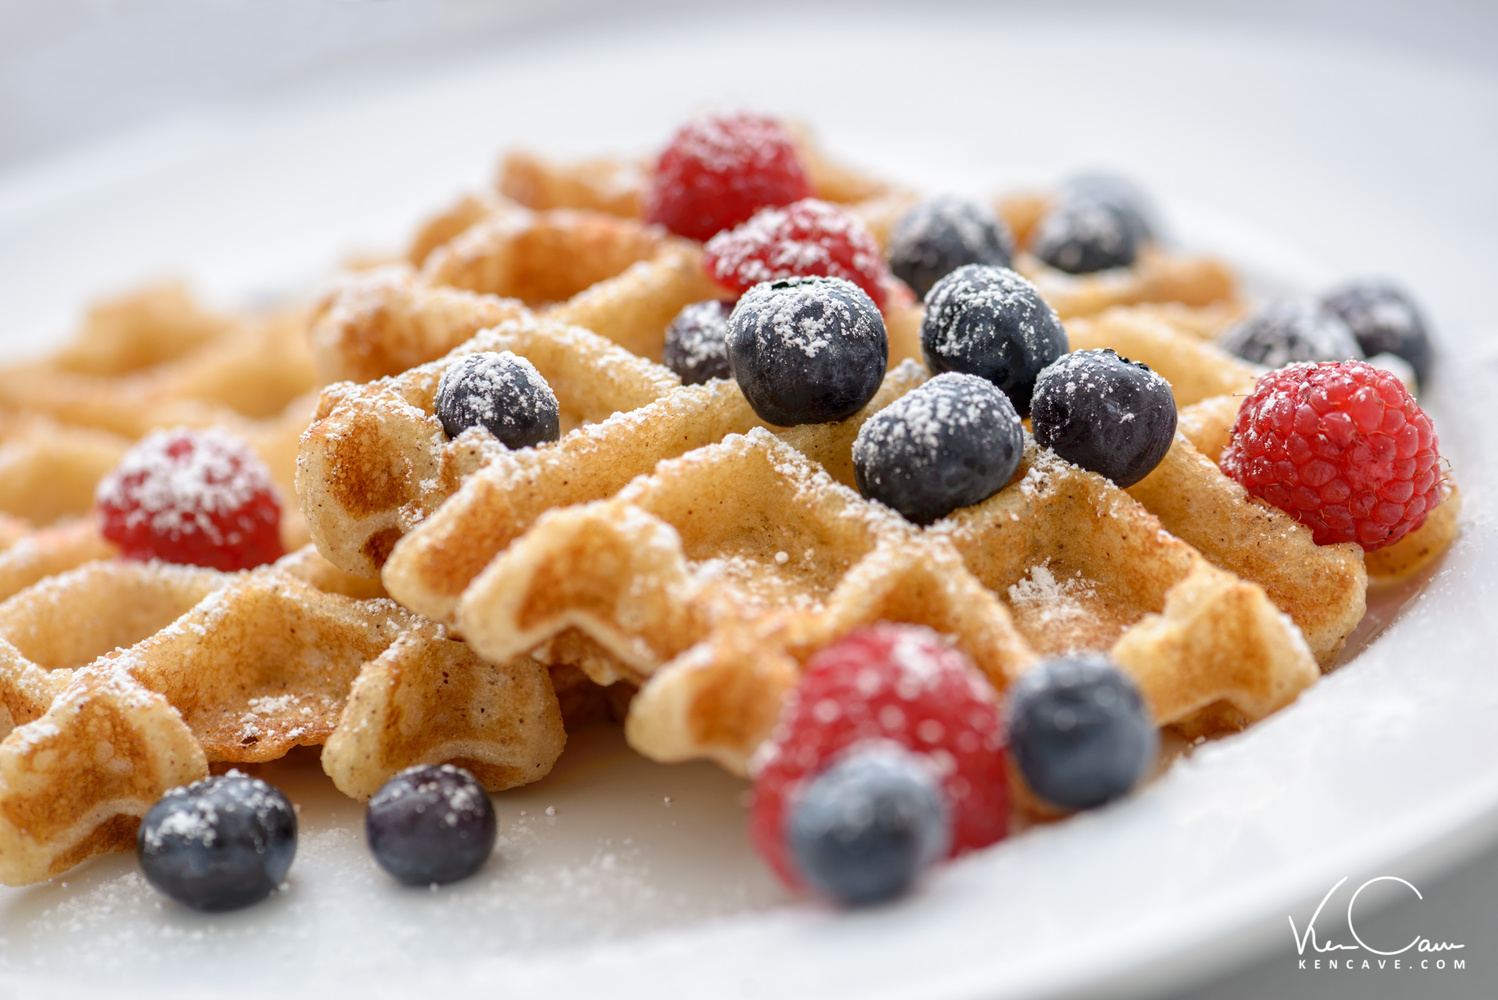 Waffles with Berries by Ken Cave